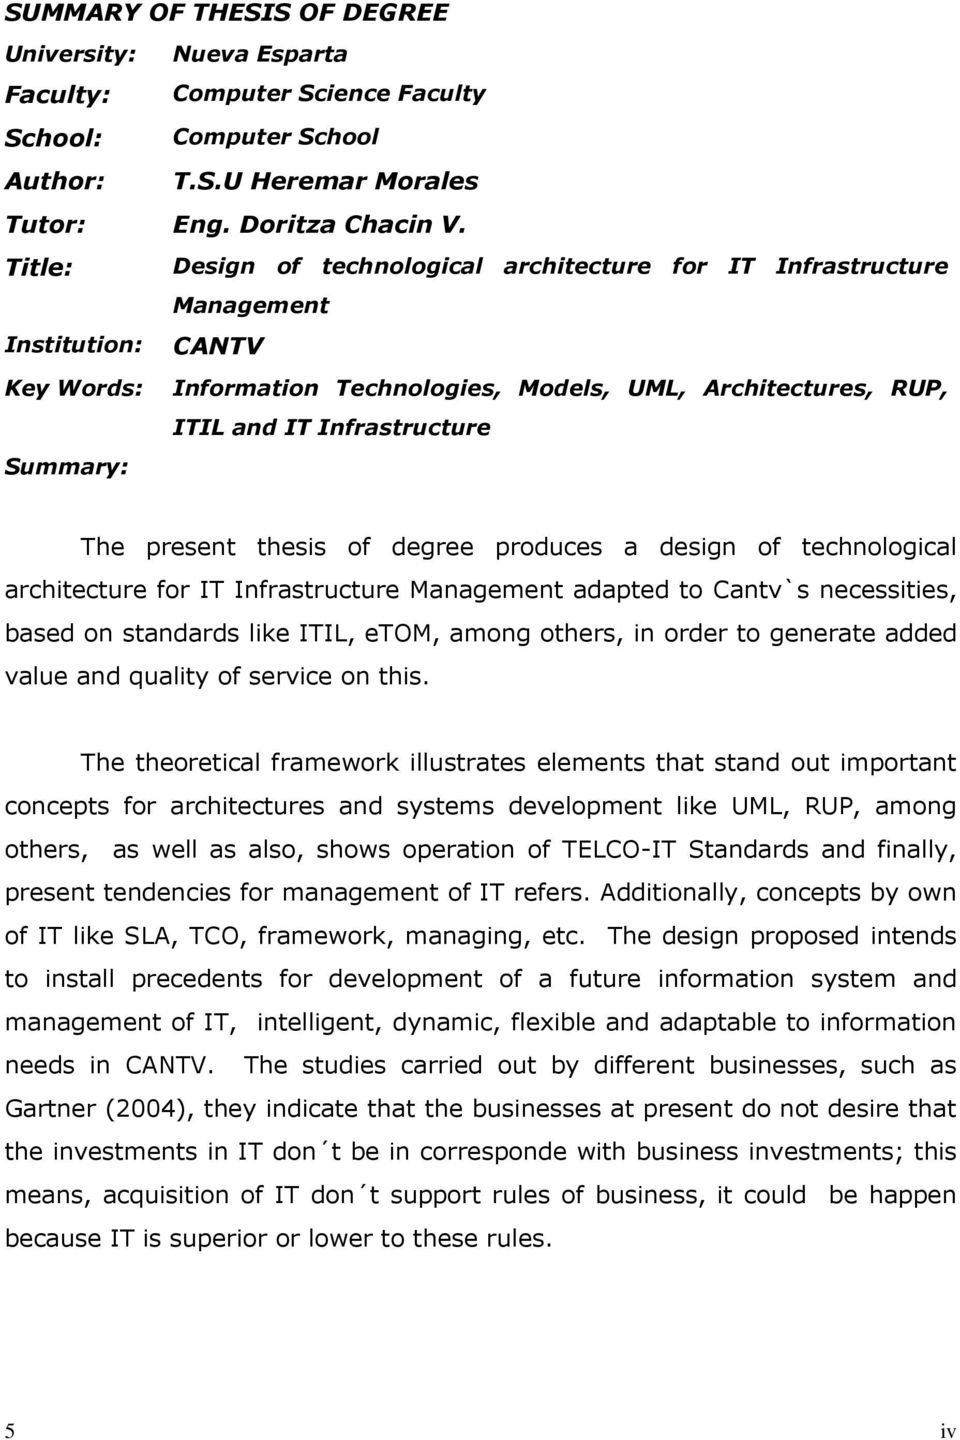 Summary: The present thesis of degree produces a design of technological architecture for IT Infrastructure Management adapted to Cantv`s necessities, based on standards like ITIL, etom, among